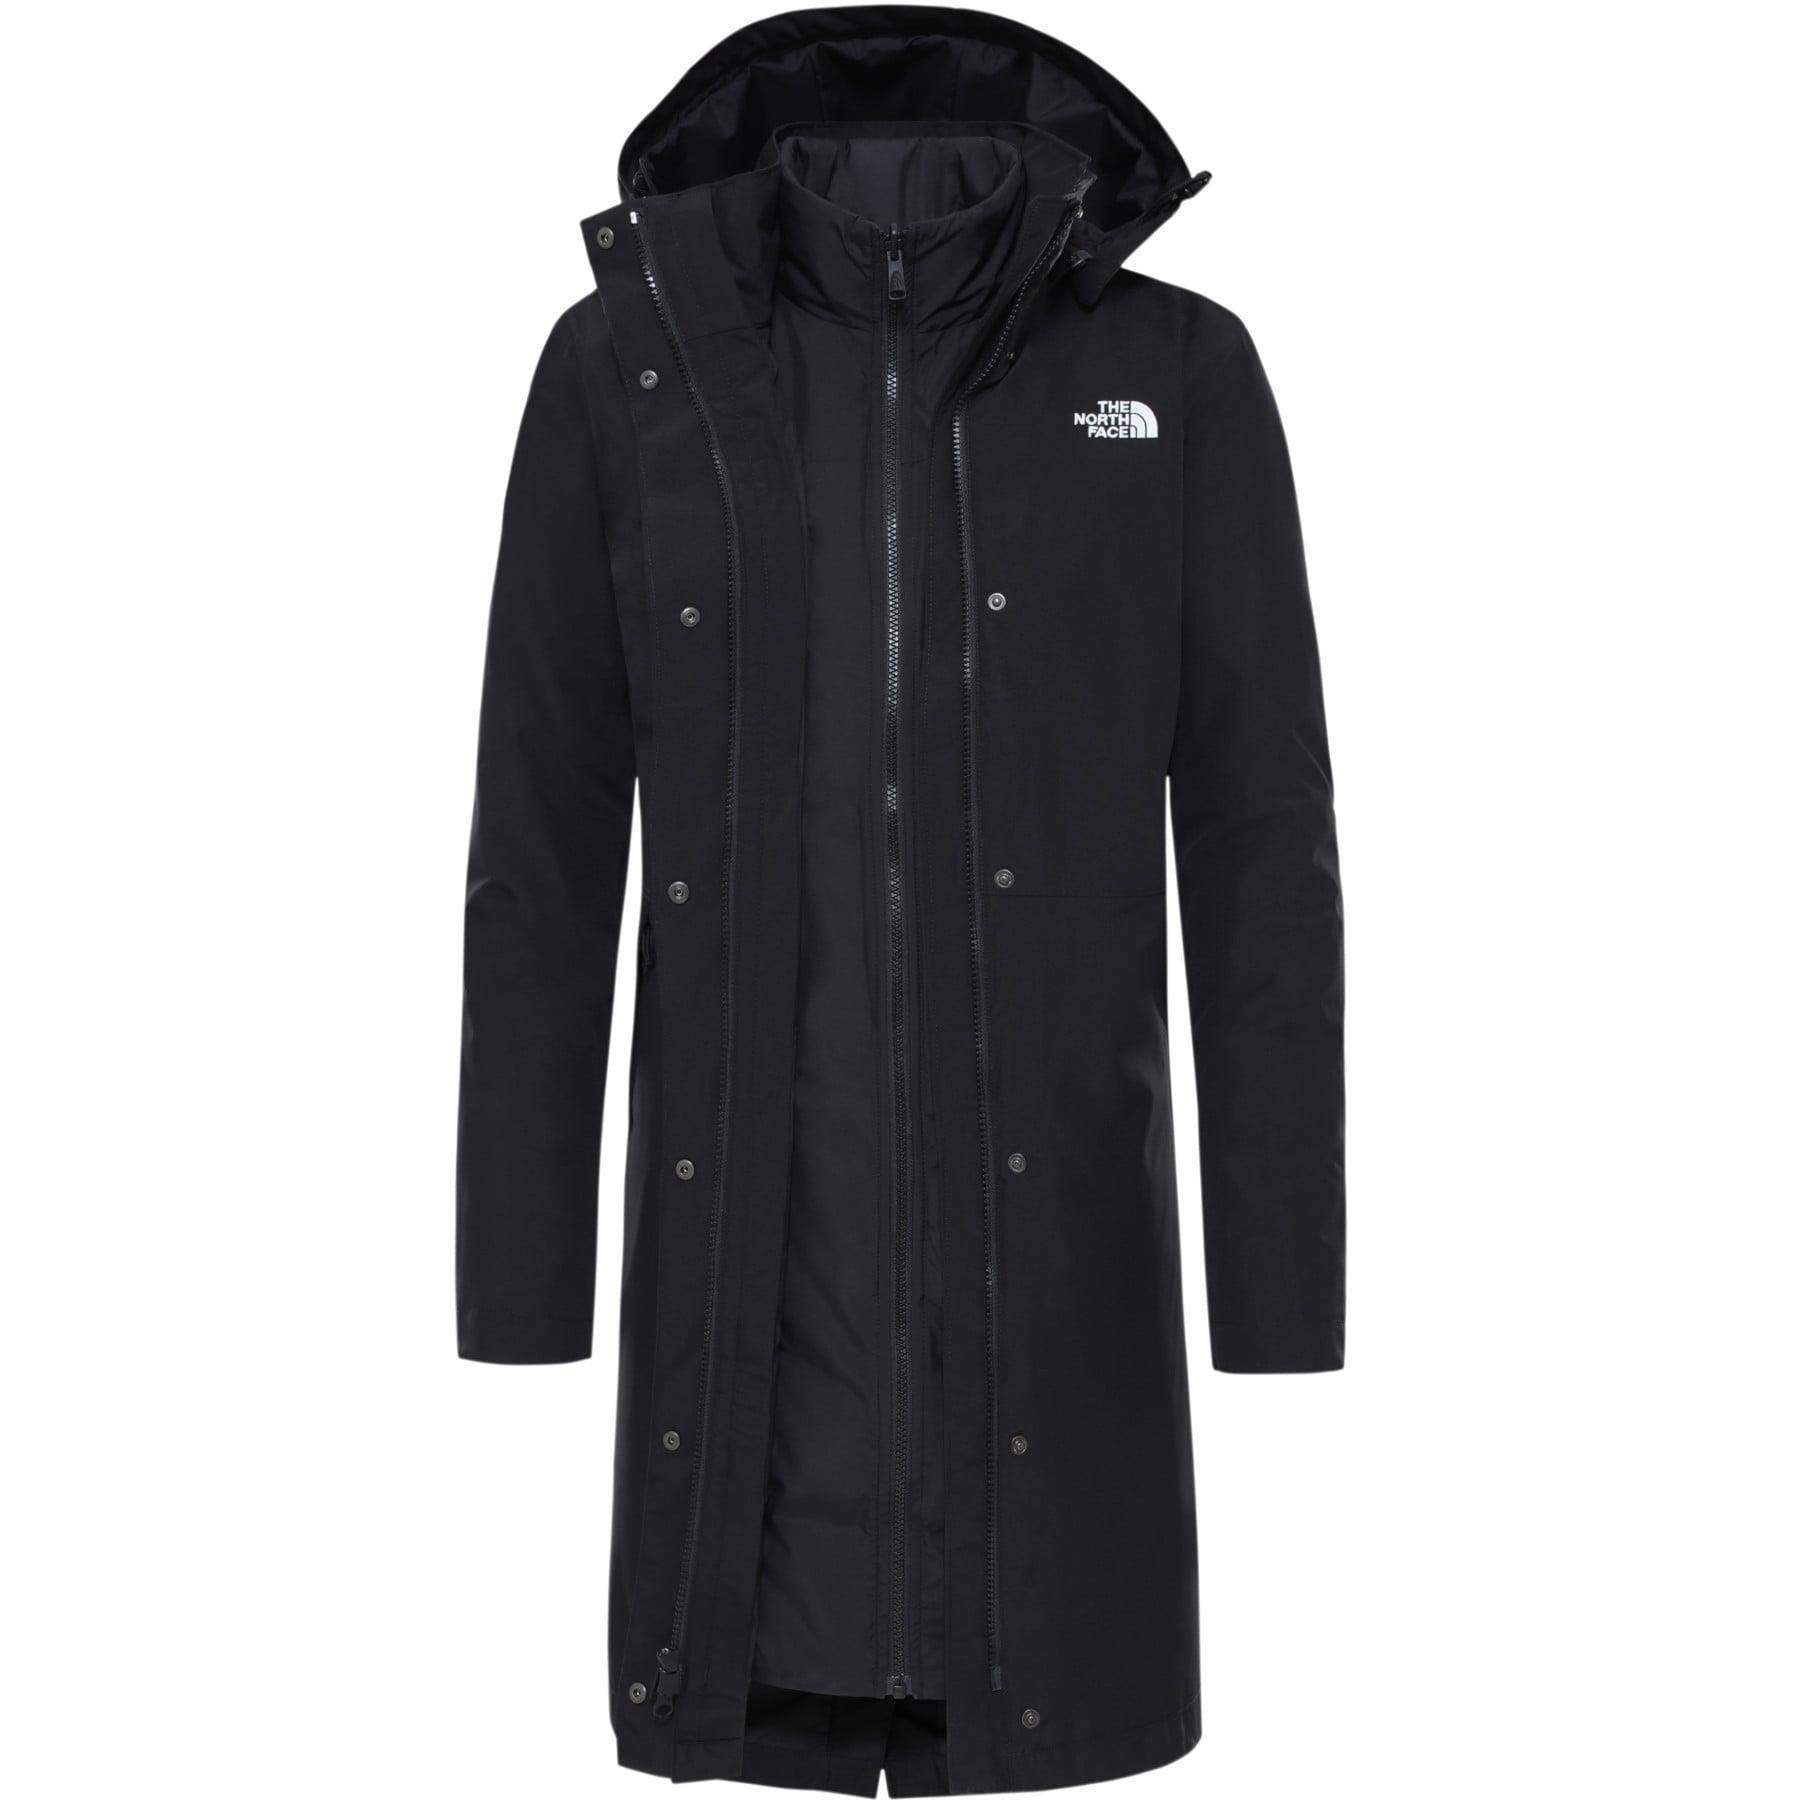 Kurtka The North Face Suzanne T94SVPKX7